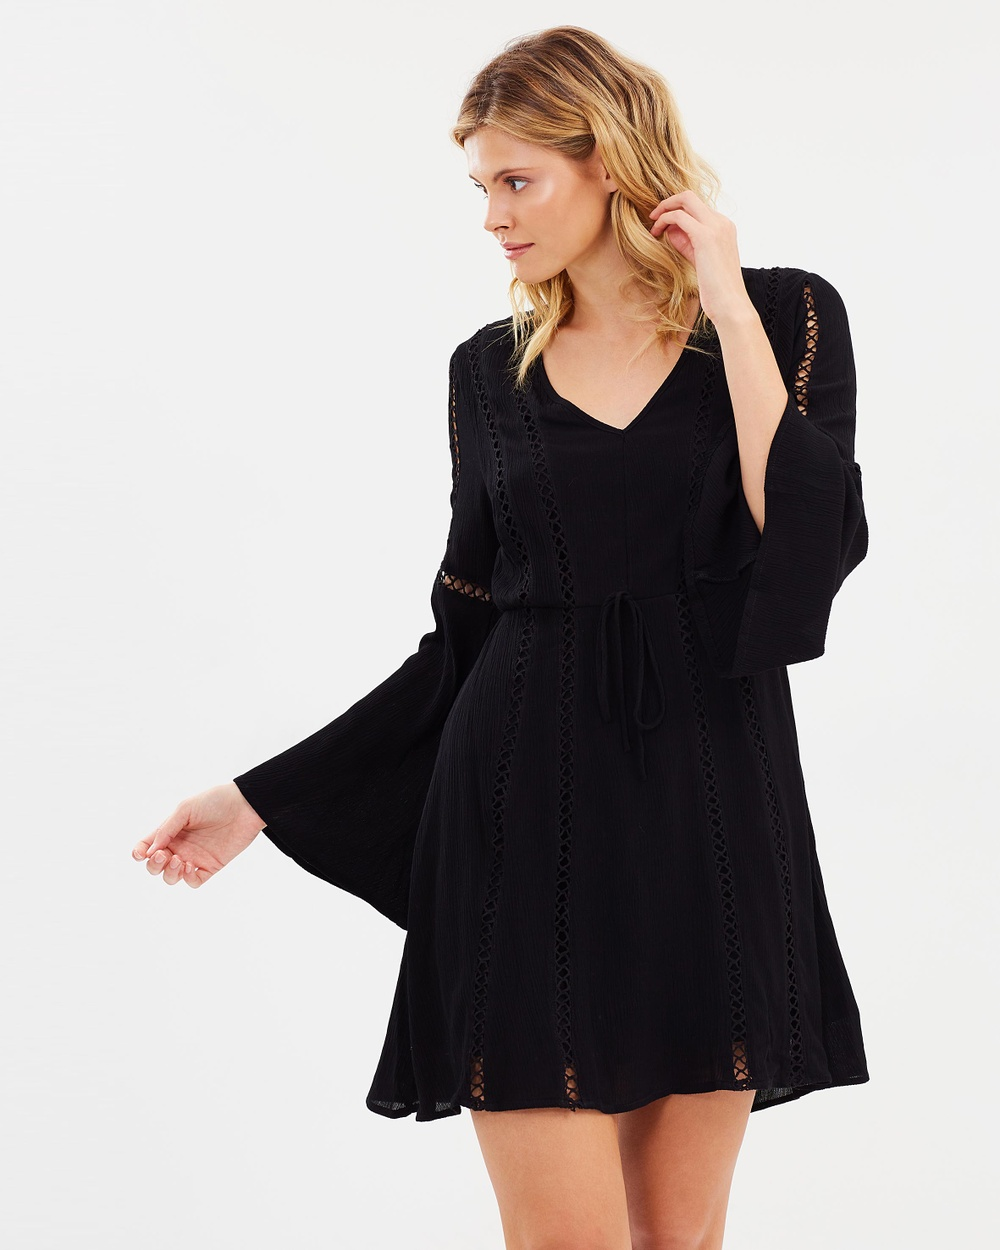 Sass Lovers Lace Dress Dresses Black Lovers Lace Dress